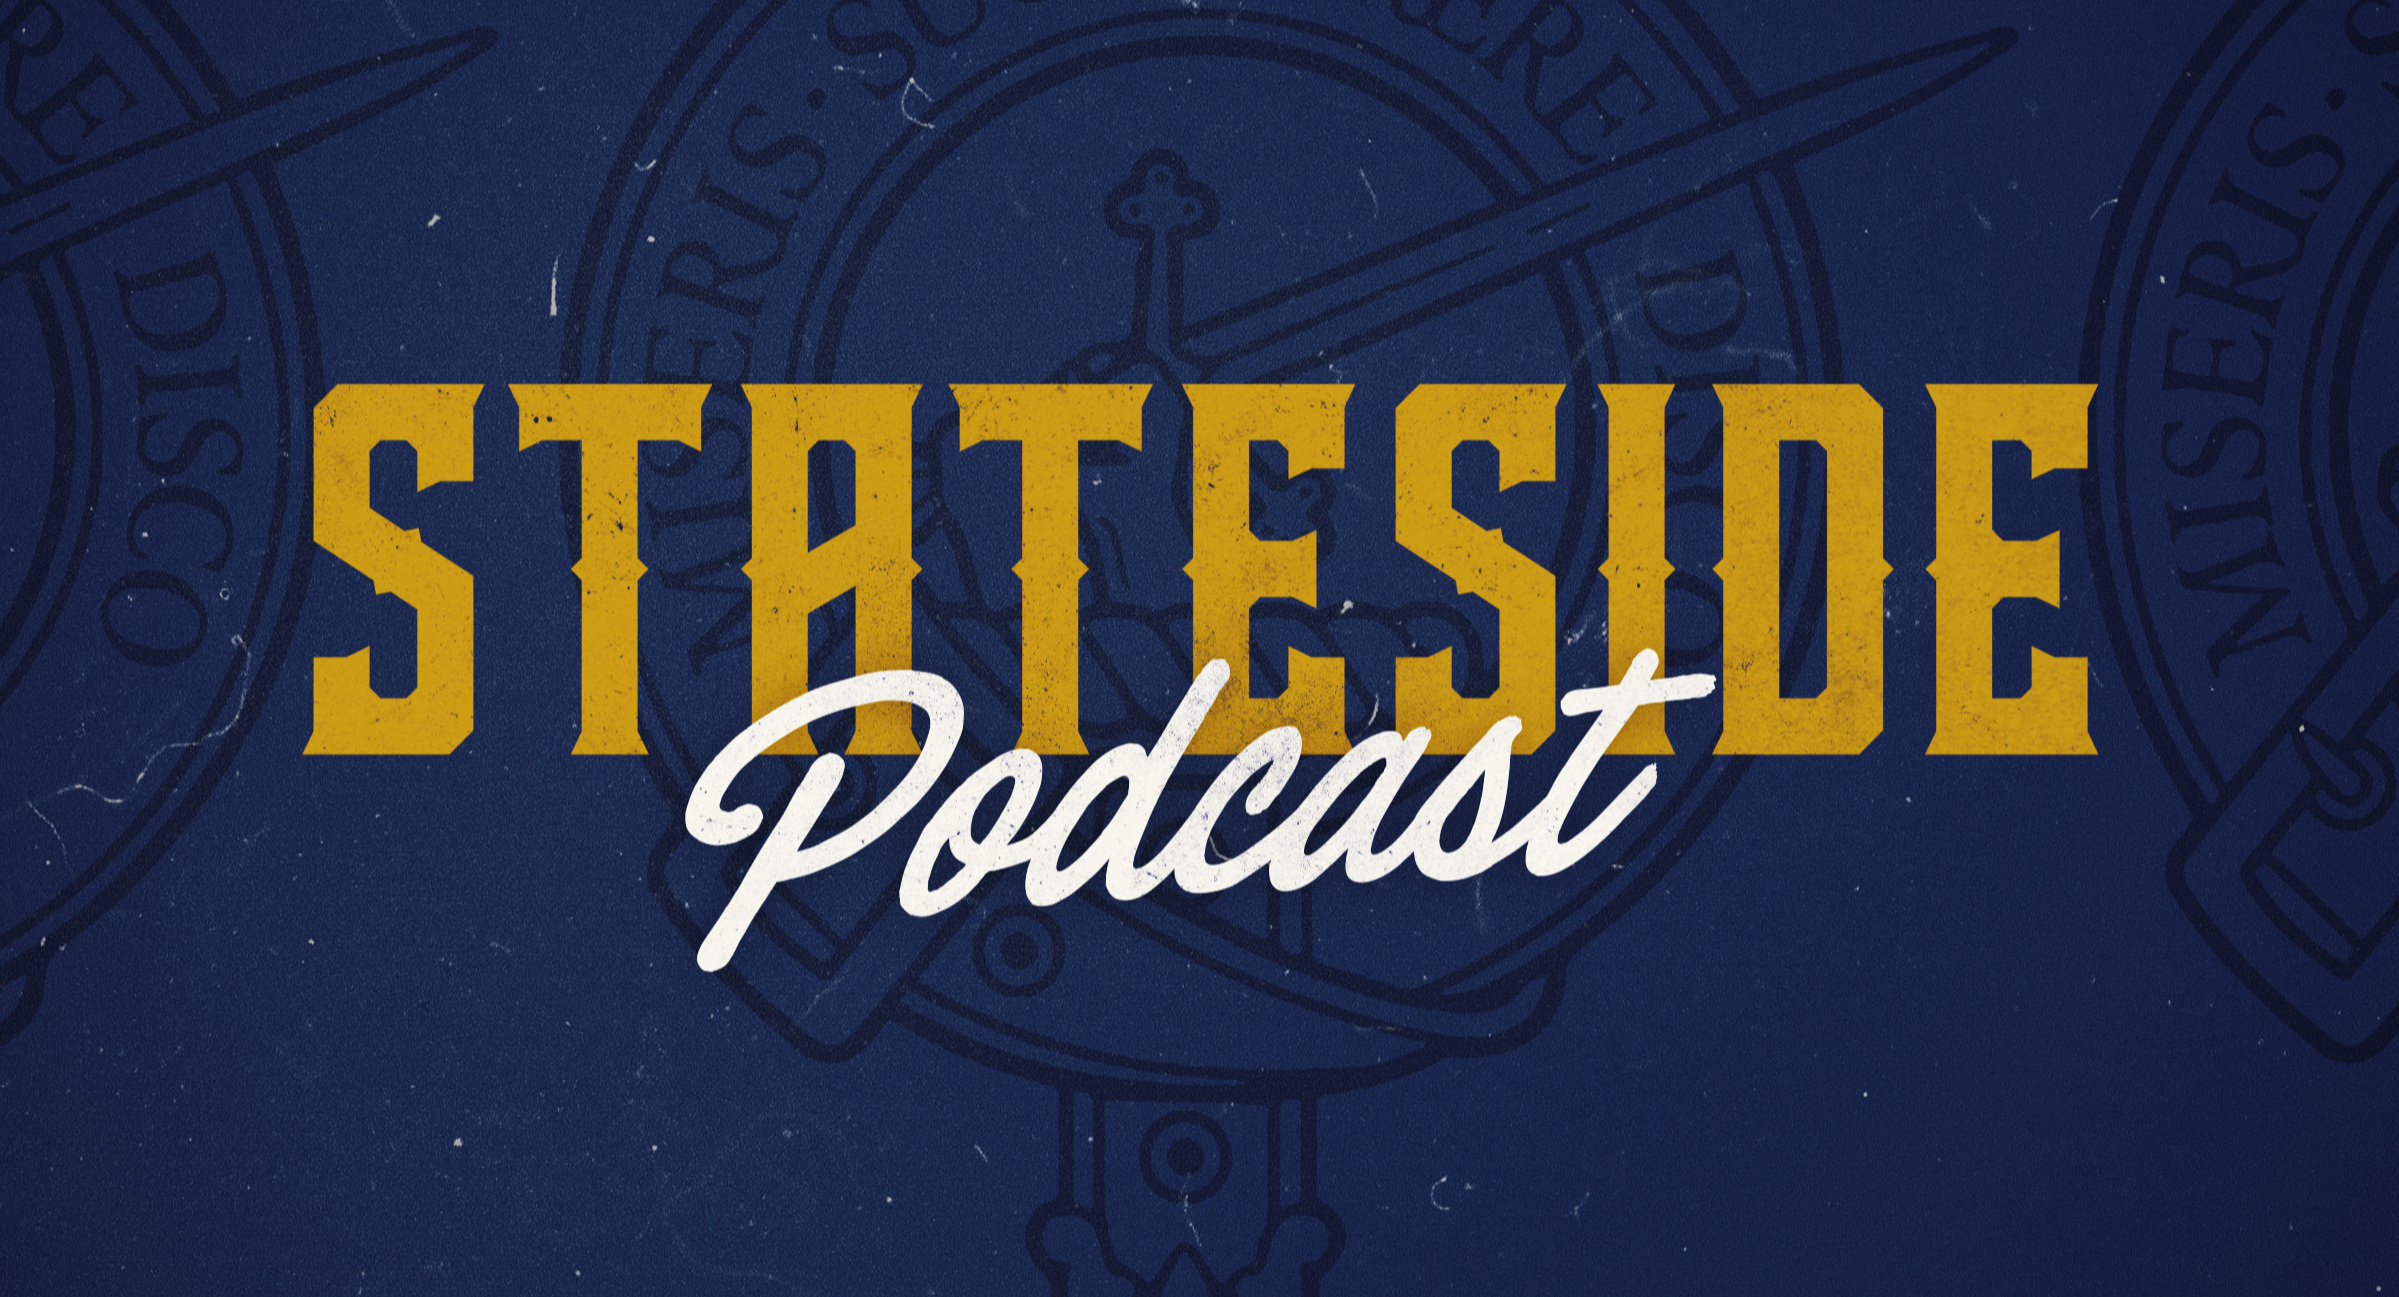 The Stateside Podcast